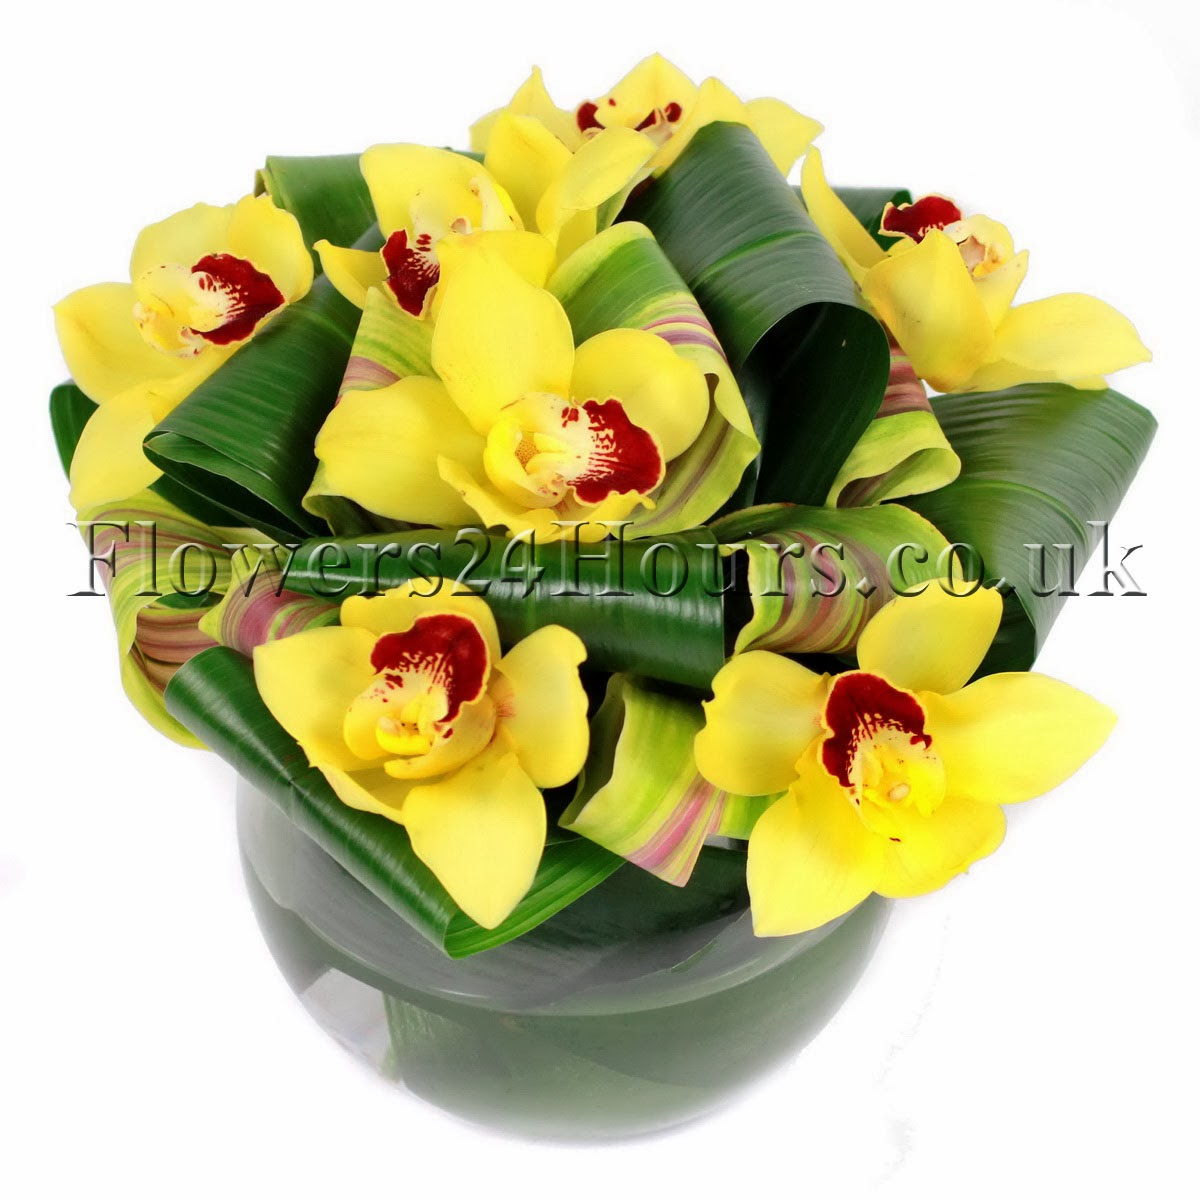 Uk flowers delivery company flowers24hours arranges this seasons orchid flower arrangement flower delivery london by london florist and uk gift shop flowers24hours izmirmasajfo Images